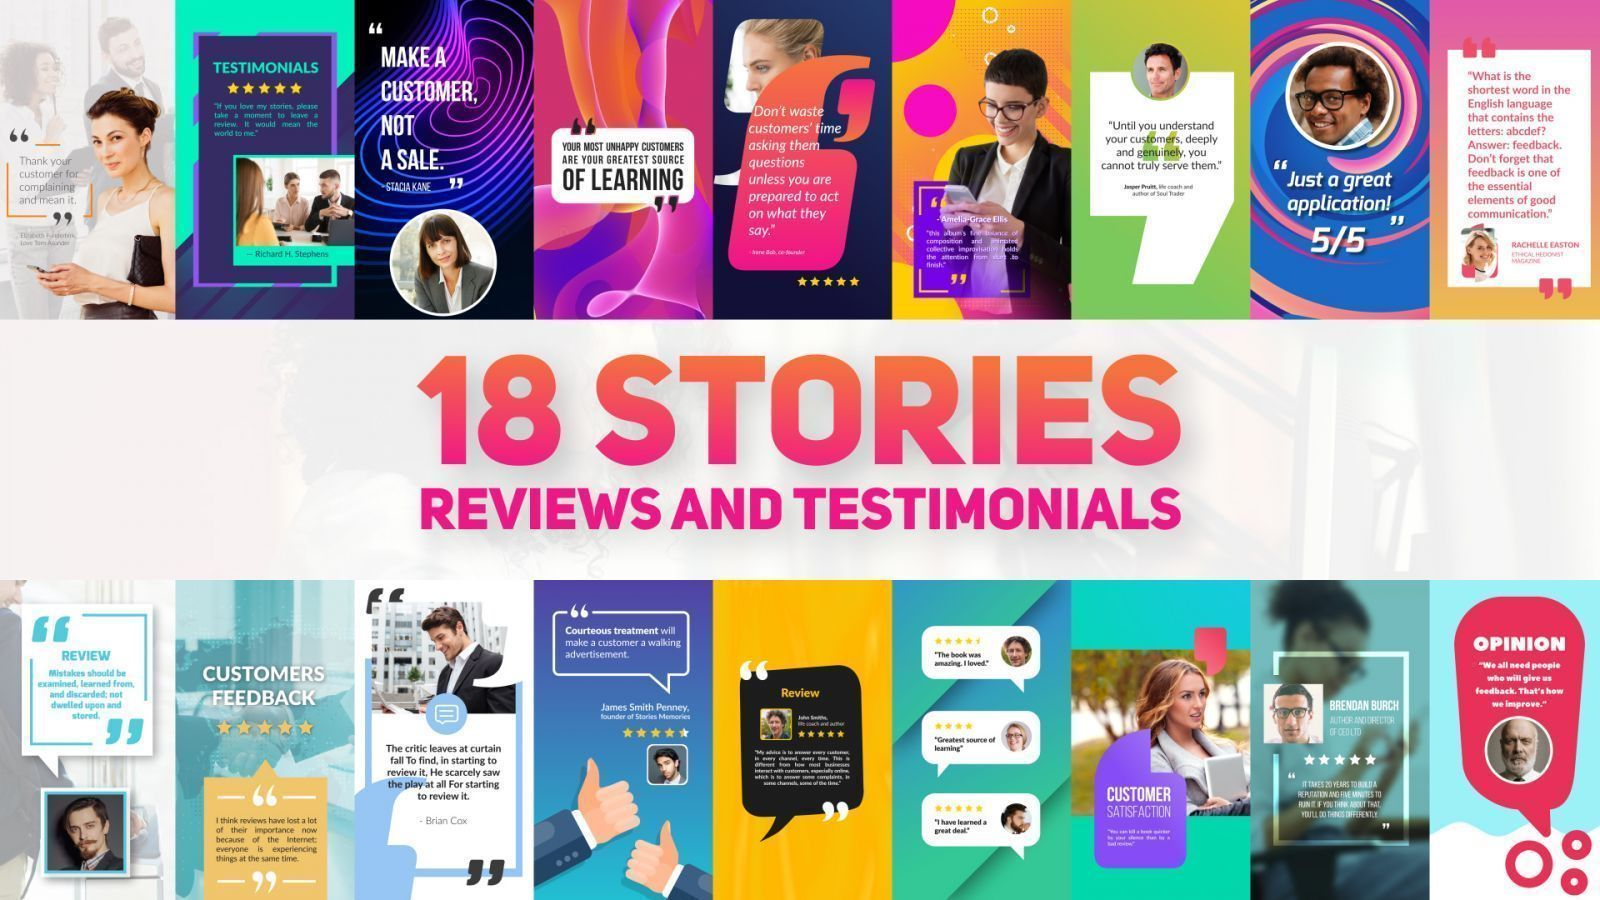 Reviews and Testimonials Stories Pack